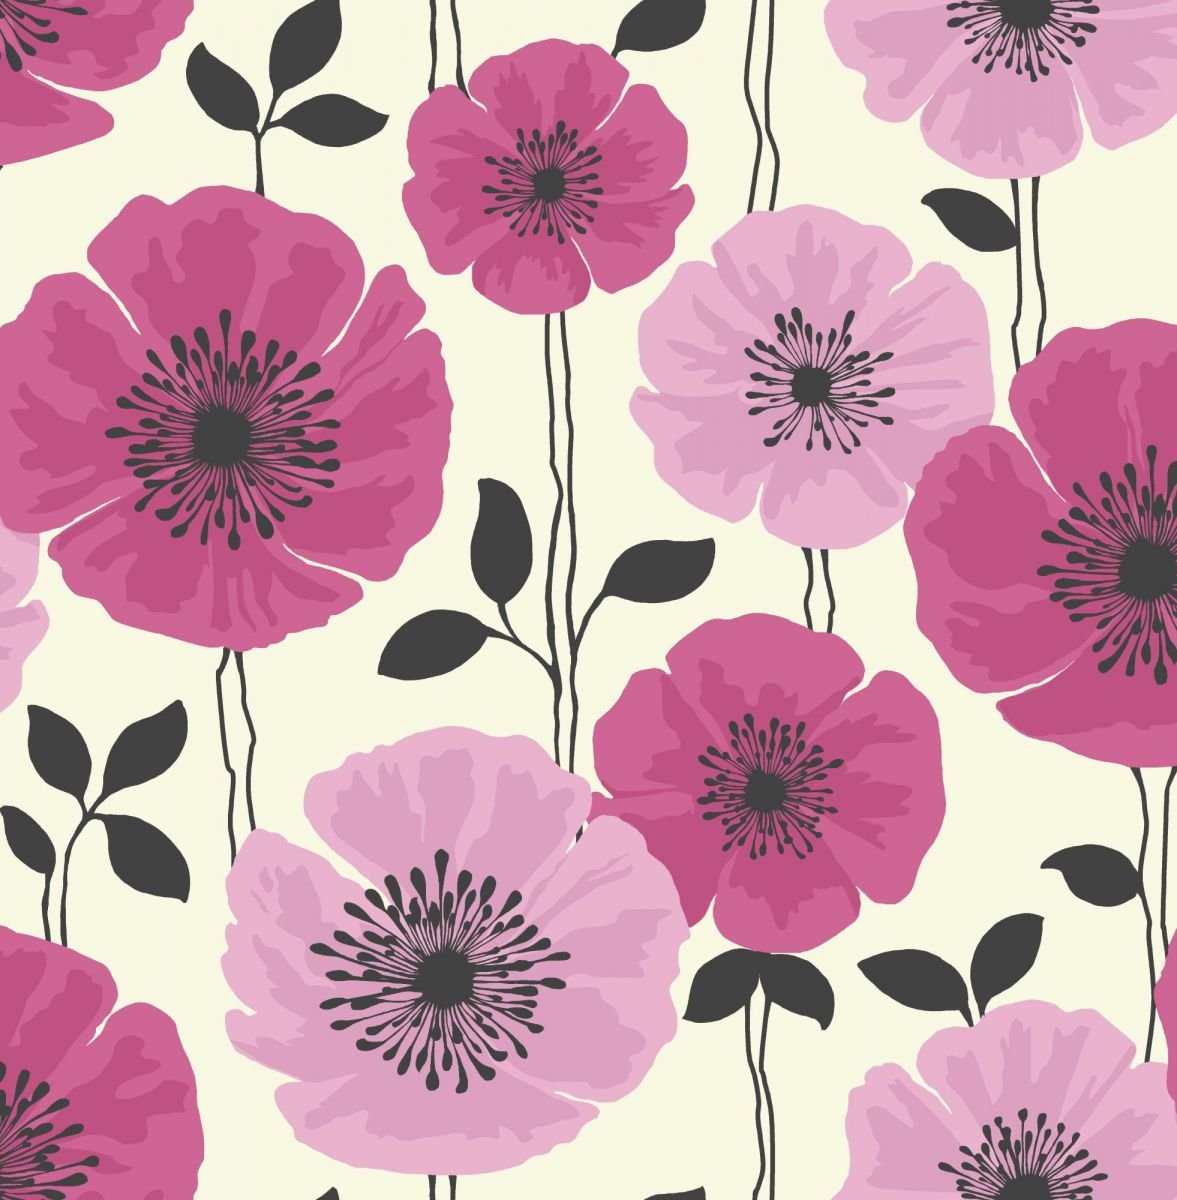 Pink white black fd14864 poppie fine decor wallpaper pink white black fd14864 poppie fine decor wallpaper amazon kitchen home mightylinksfo